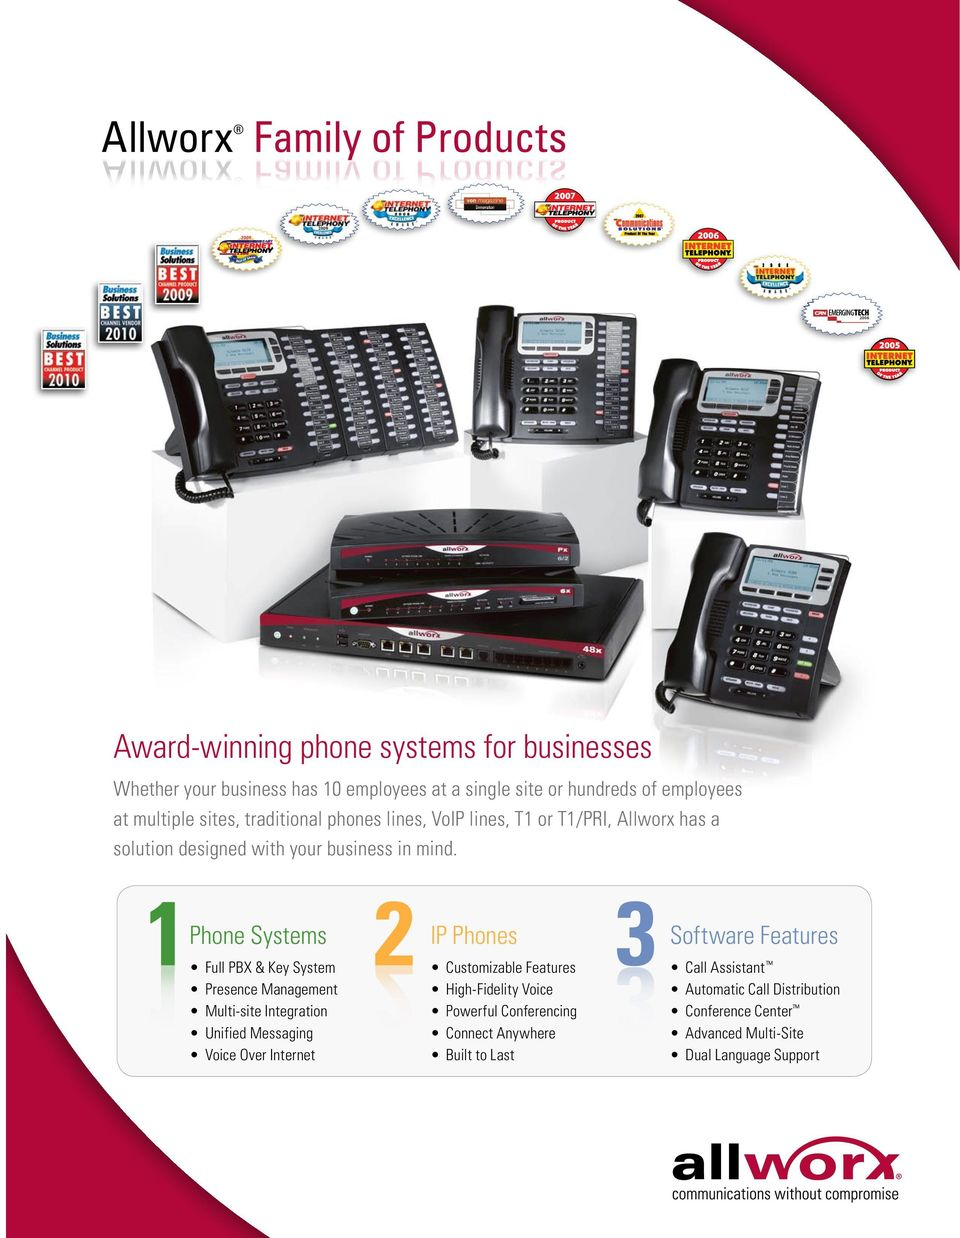 1 2 3 1 Phone Systems 2 IP Phones 3 Full PBX & Key System Presence Management Multi-site Integration Unified Messaging Voice Over Internet Customizable Features